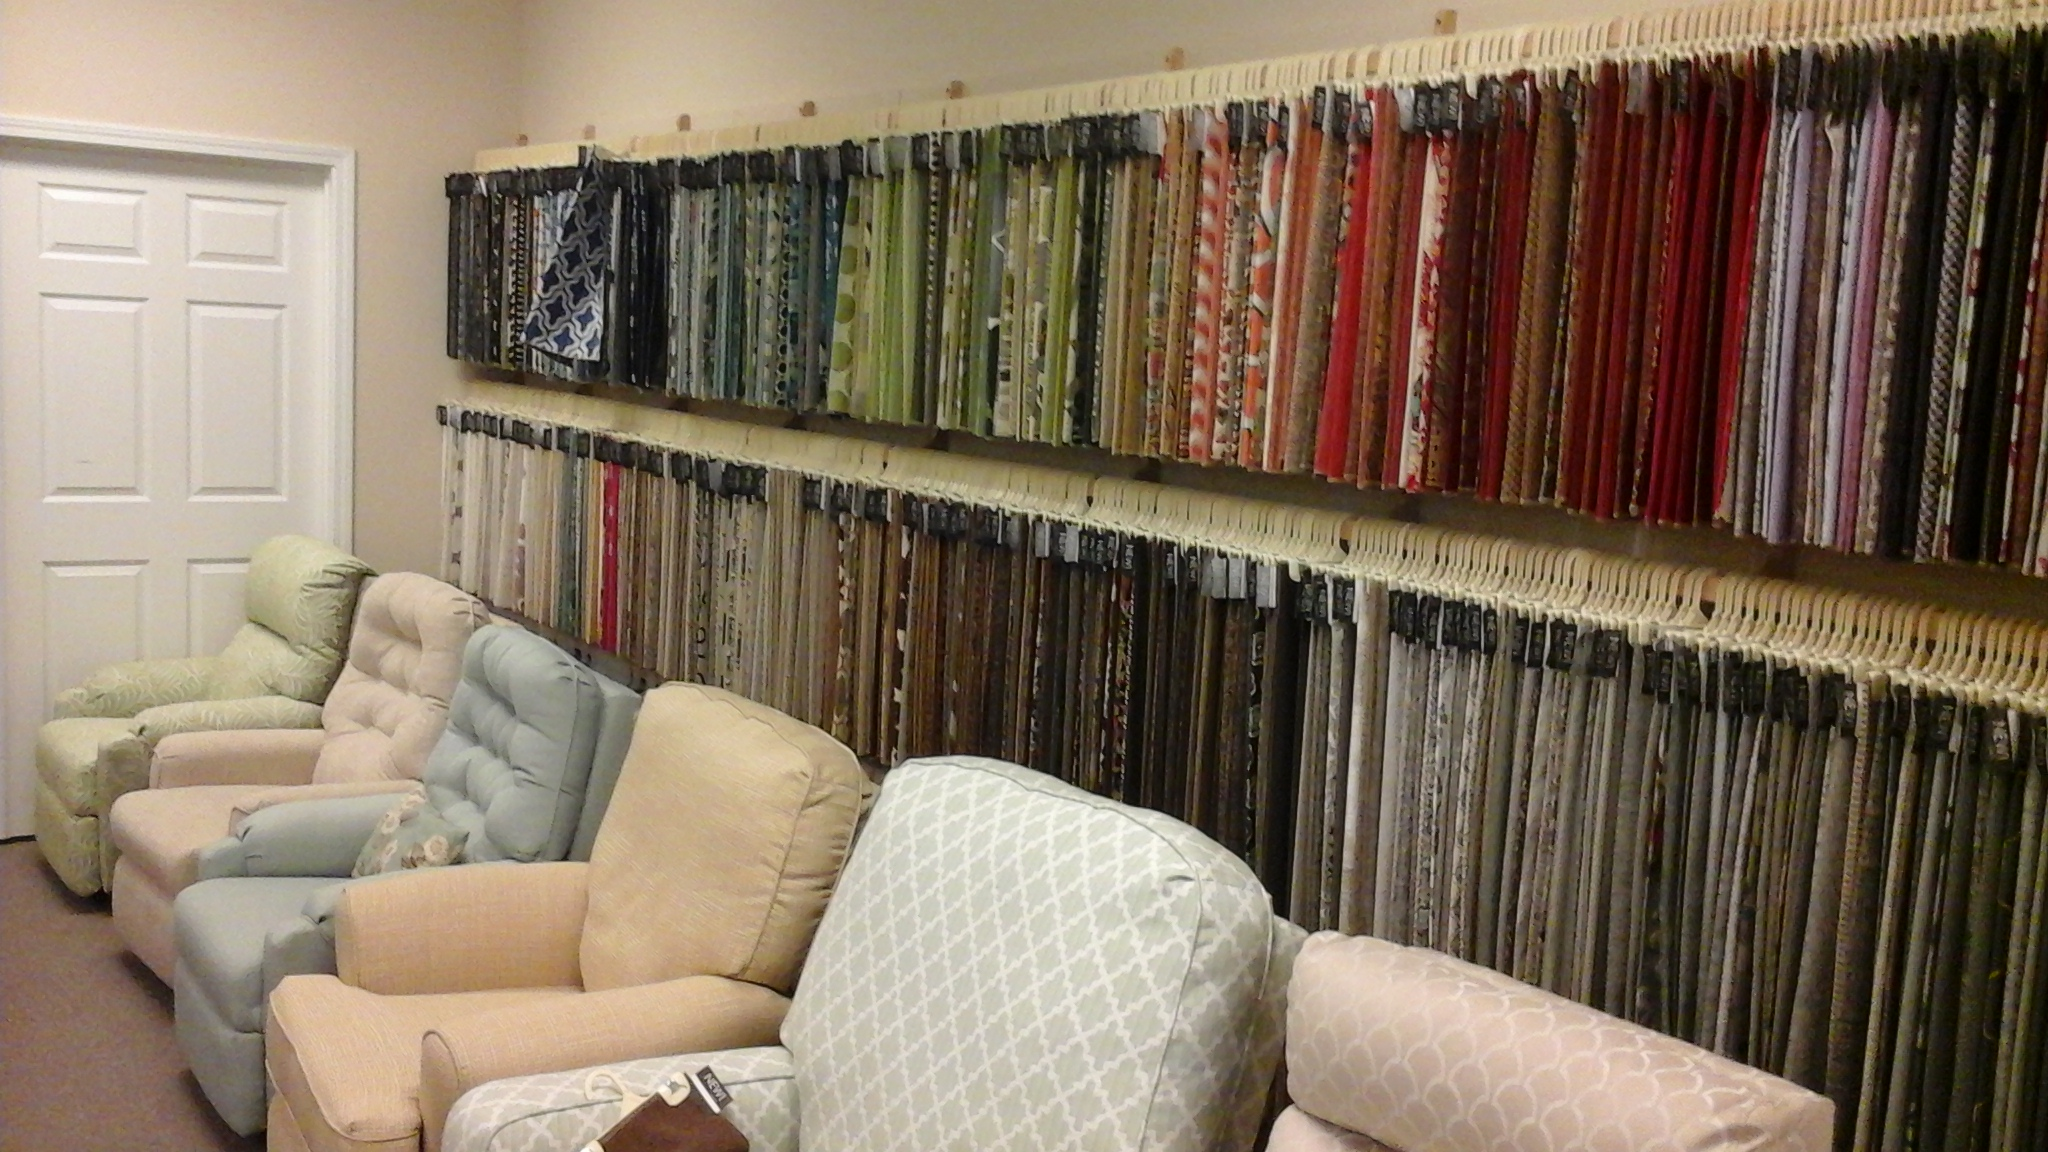 25 roswell office furniture outlet ga 100 floor and for International decor outlet georgia